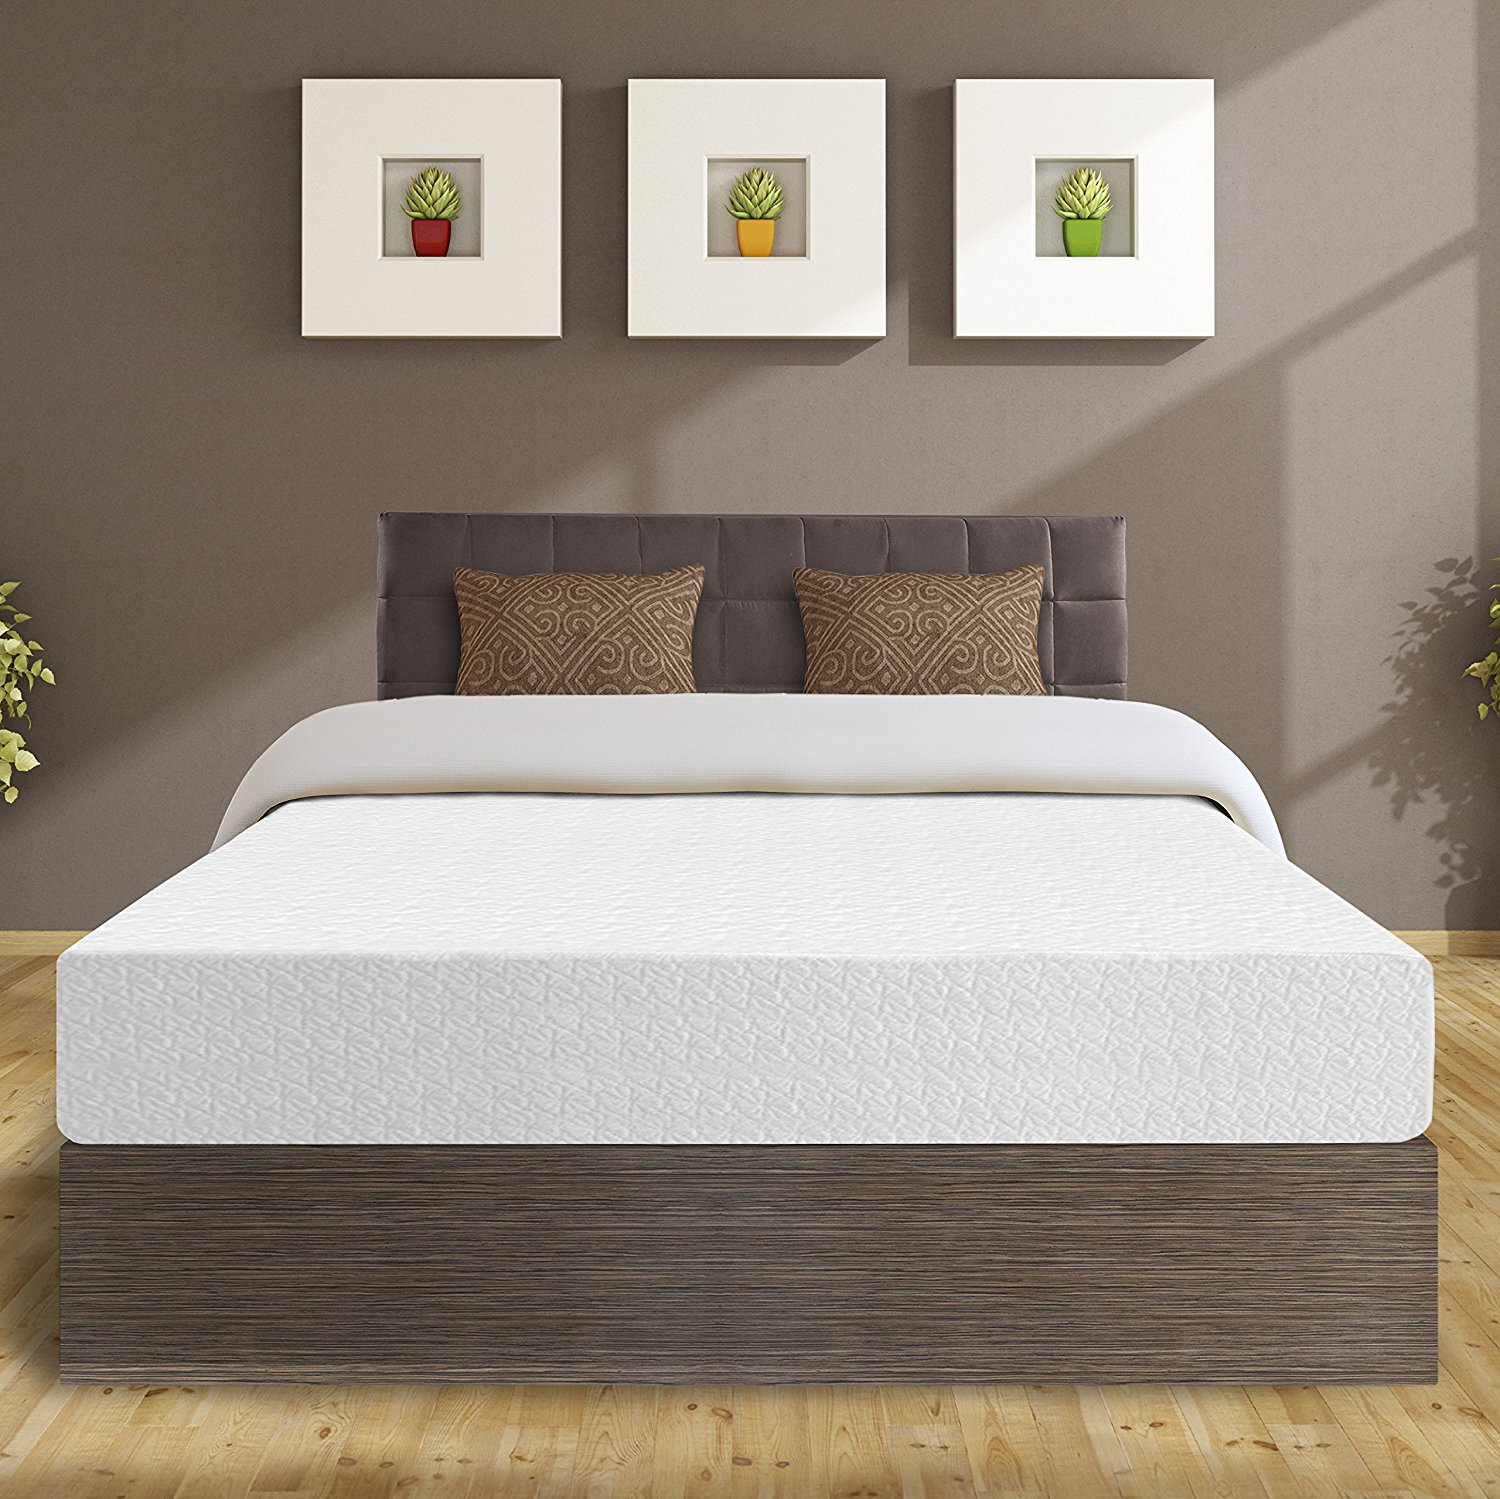 Top 10 Best Mattresses 2019 Get A Better Night Sleep